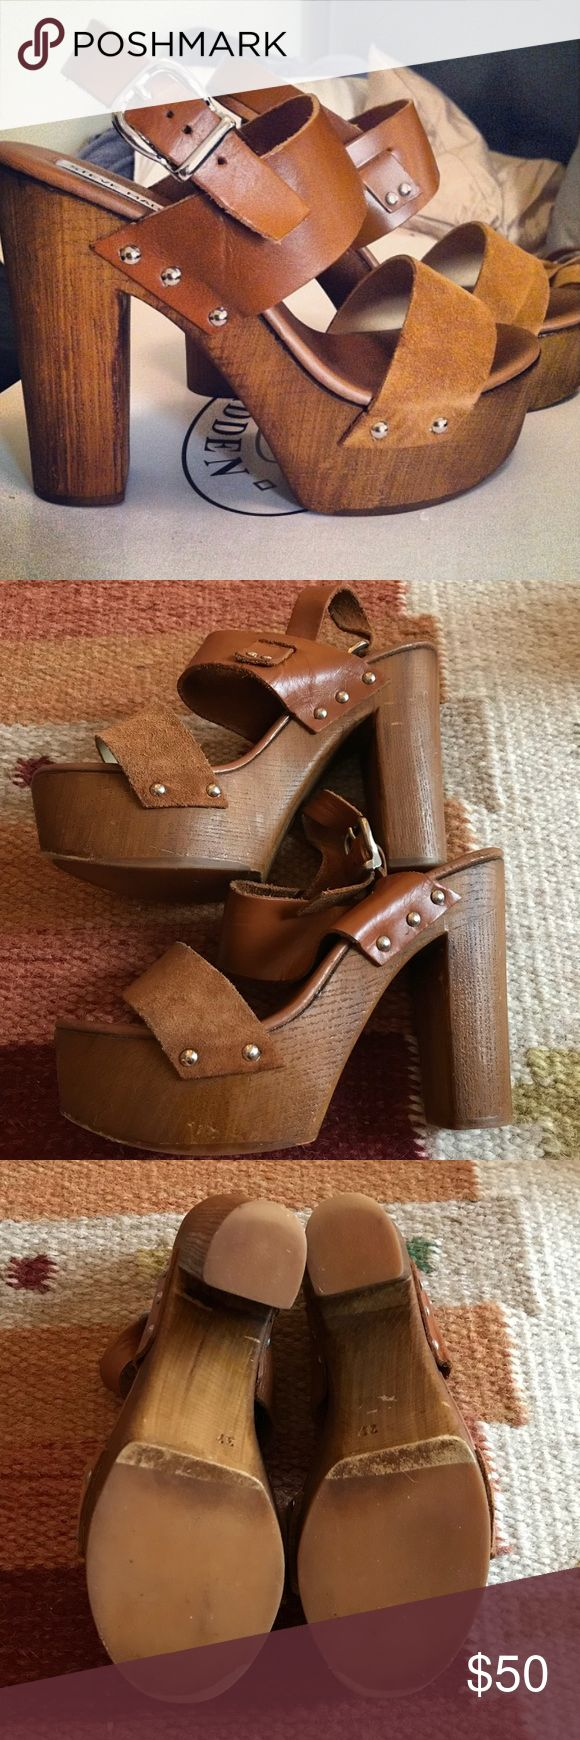 """Steve Madden Wedges Ridiculously cute Steve Madden wooden wedges with leather and suede straps. In good condition with signs of wear as seen in pictures (note first picture was when they were brand new). Just a little too big on me, so decided to sell! I think fit either a 7 or 7.5 because the straps have some give to them. These are rare!! Originally purchased from South Moon Under. Heel height is ~5"""" Steve Madden Shoes Wedges"""